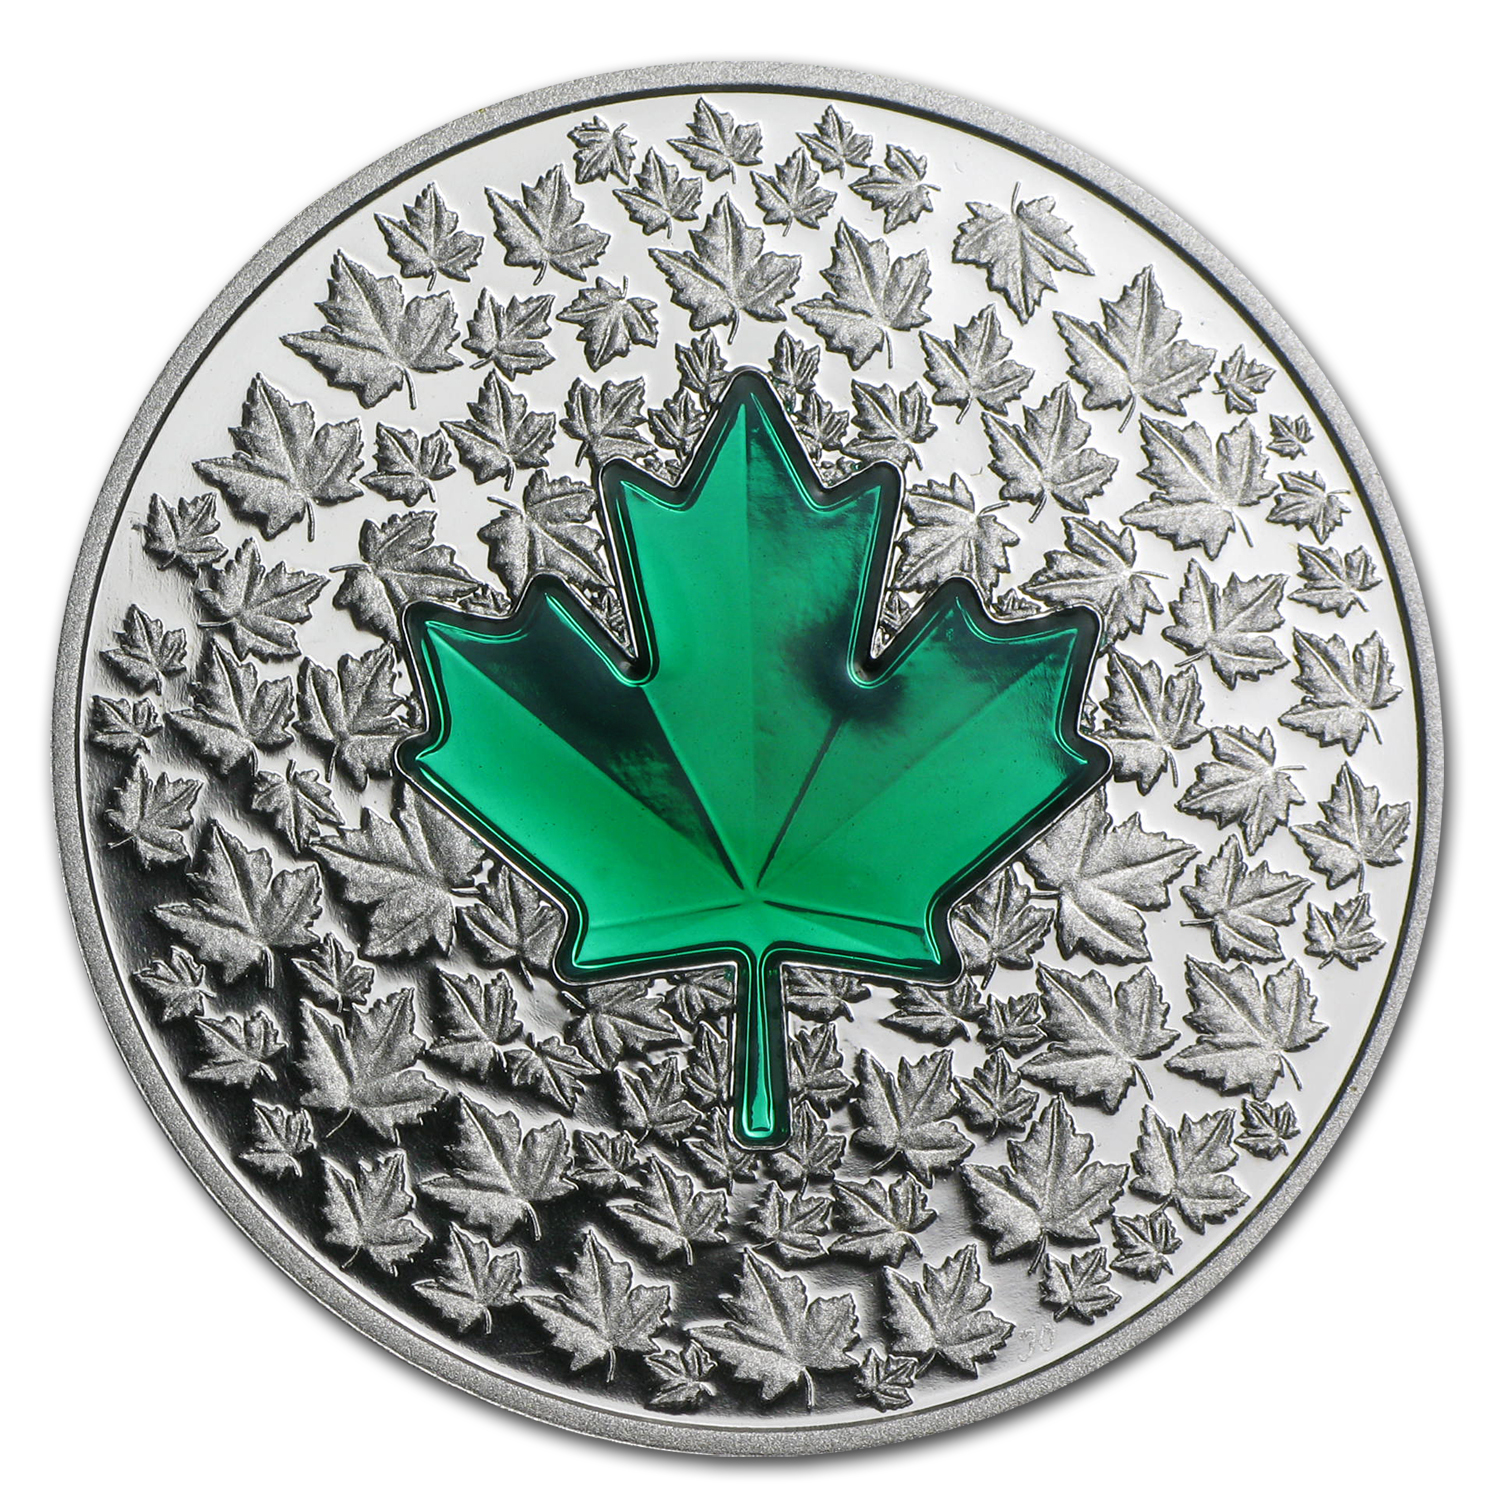 2014 1 oz Silver Can. $20 Maple Leaf Impression (Green Enamel)